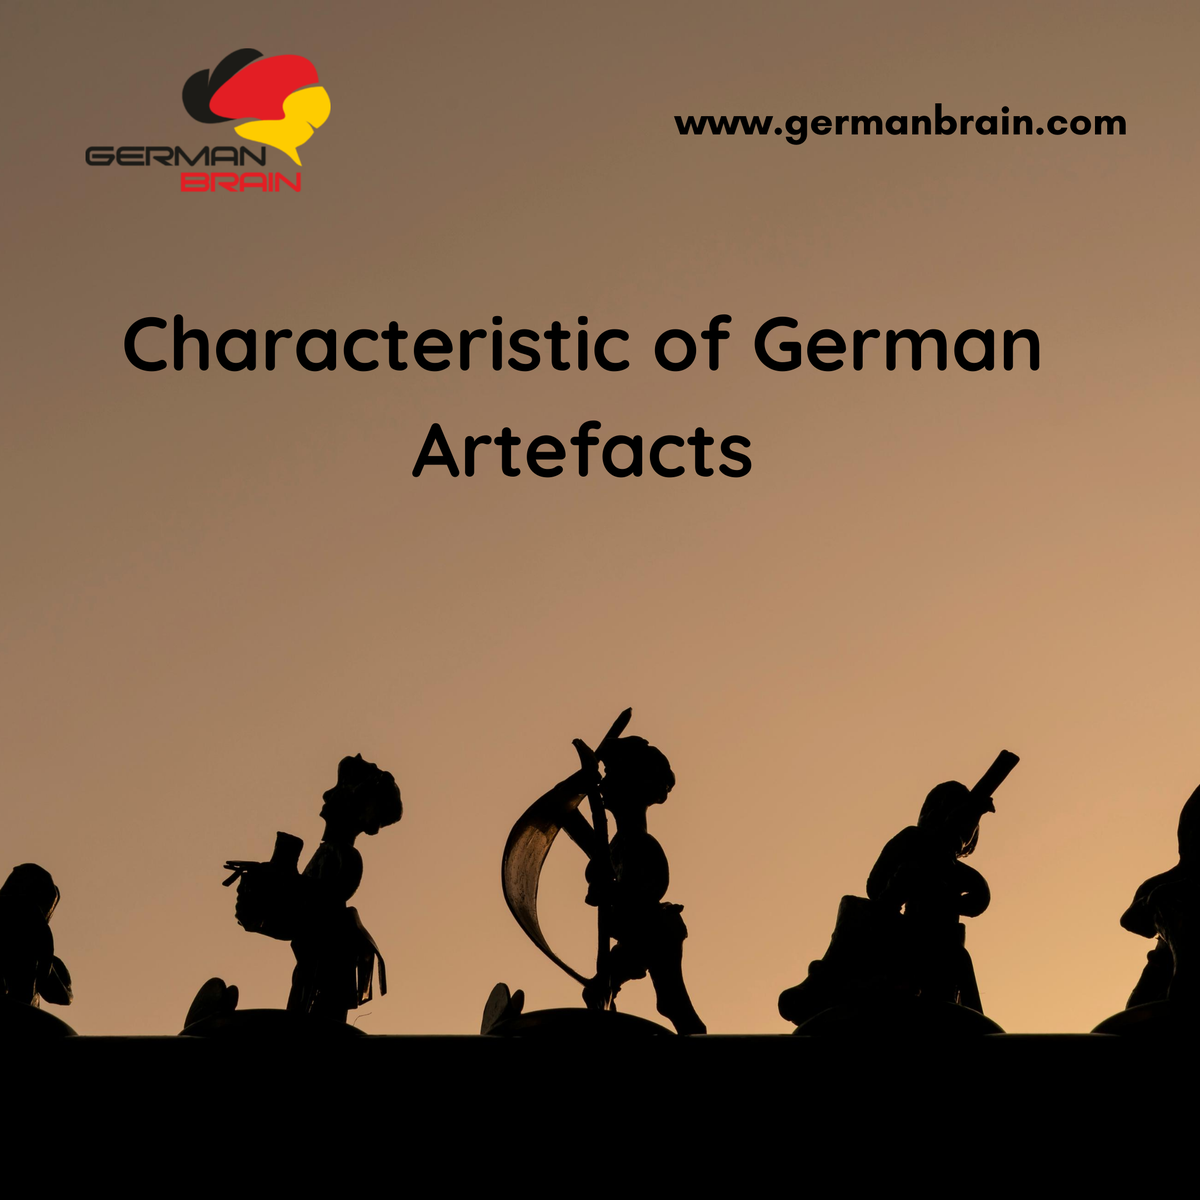 Characteristic of German Artefacts  http://germanbrain.com/german-artefacts/ …  #Germany #germanblogger #germangirl #Germancars #germanboy #germancar #germaninteriorbloggers #germanshorthairedpointer #germanmodel #GermanyTourism #germania #Germanengineering #germanroamers #germancosplay #germanblogpic.twitter.com/w3OyEvGj60